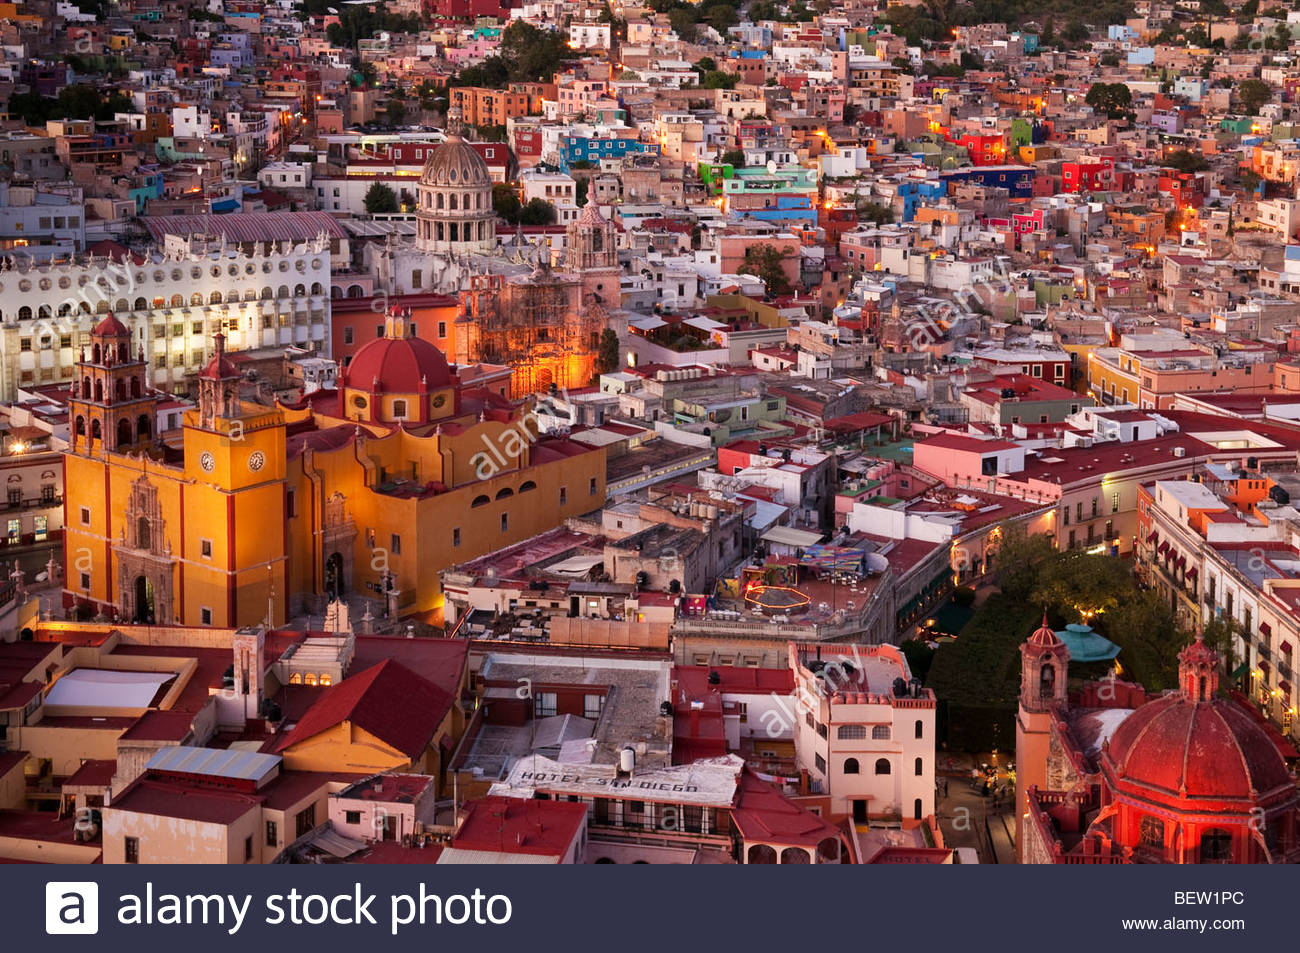 Downtown historic district or Zona Centro of Guanajuato, Mexico, as the sun sets. - Stock Image